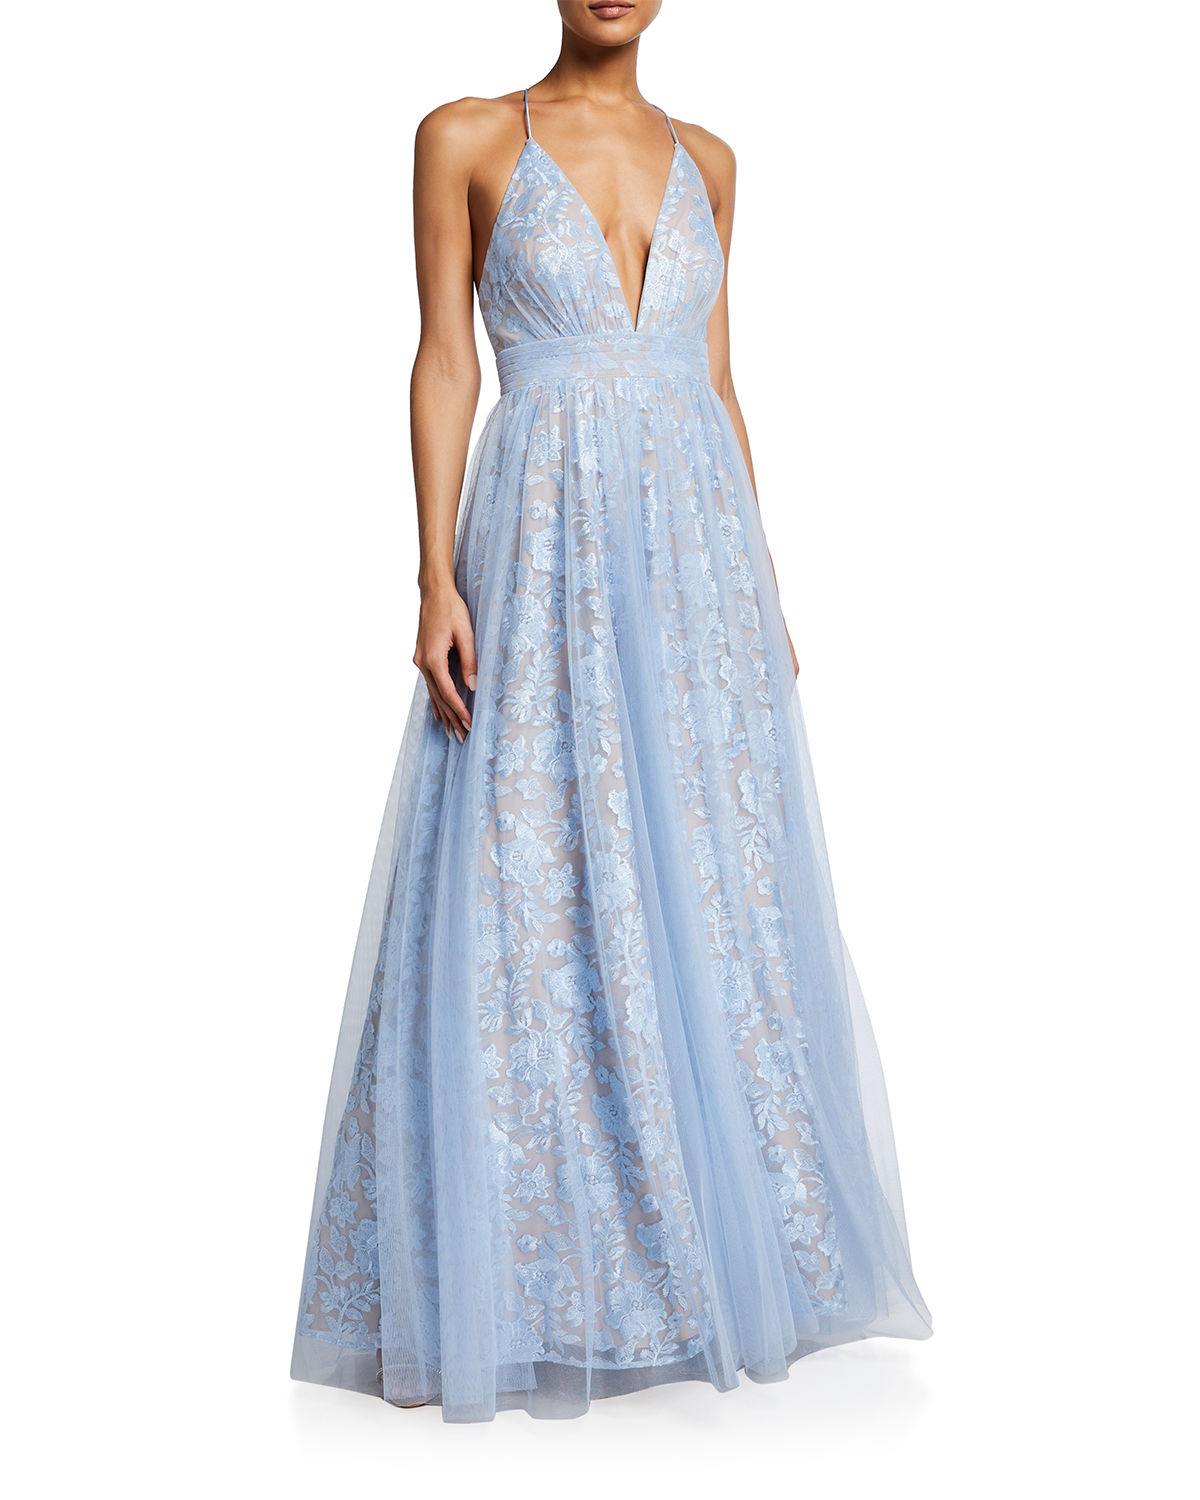 Aidan Mattox Gowns PLUNGING FLORAL EMBROIDERED MESH COVERED BALL GOWN